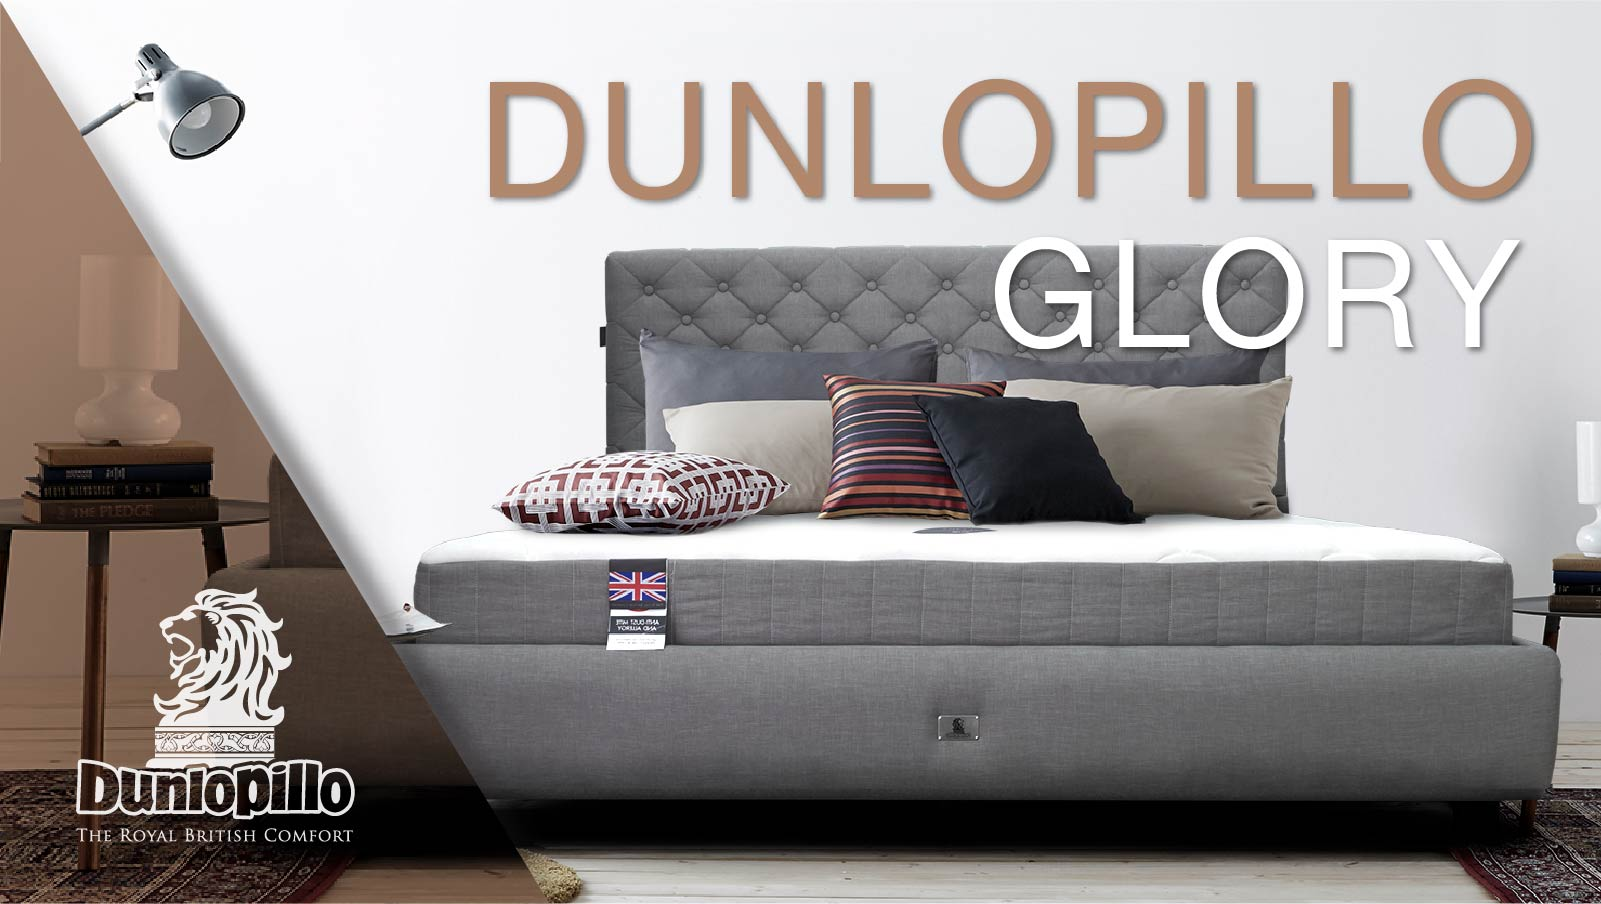 Dunlopillo Mattress - Glory